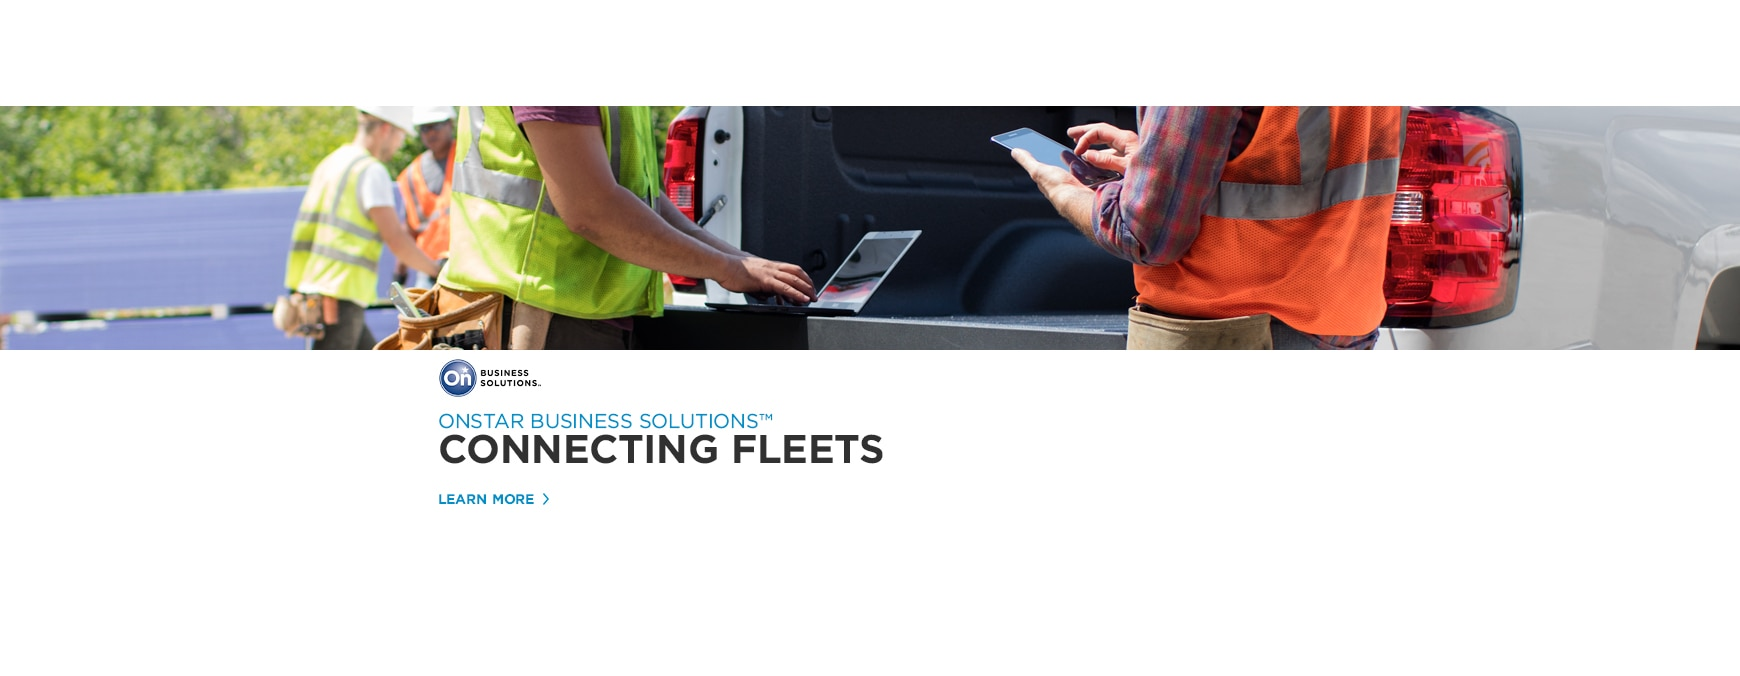 Chevrolet Silverado Work truck with construction workers checking phones at tailgate.  ONSTAR BUSINESS SOLUTIONS™: CONNECTING FLEETS.  LEARN MORE.